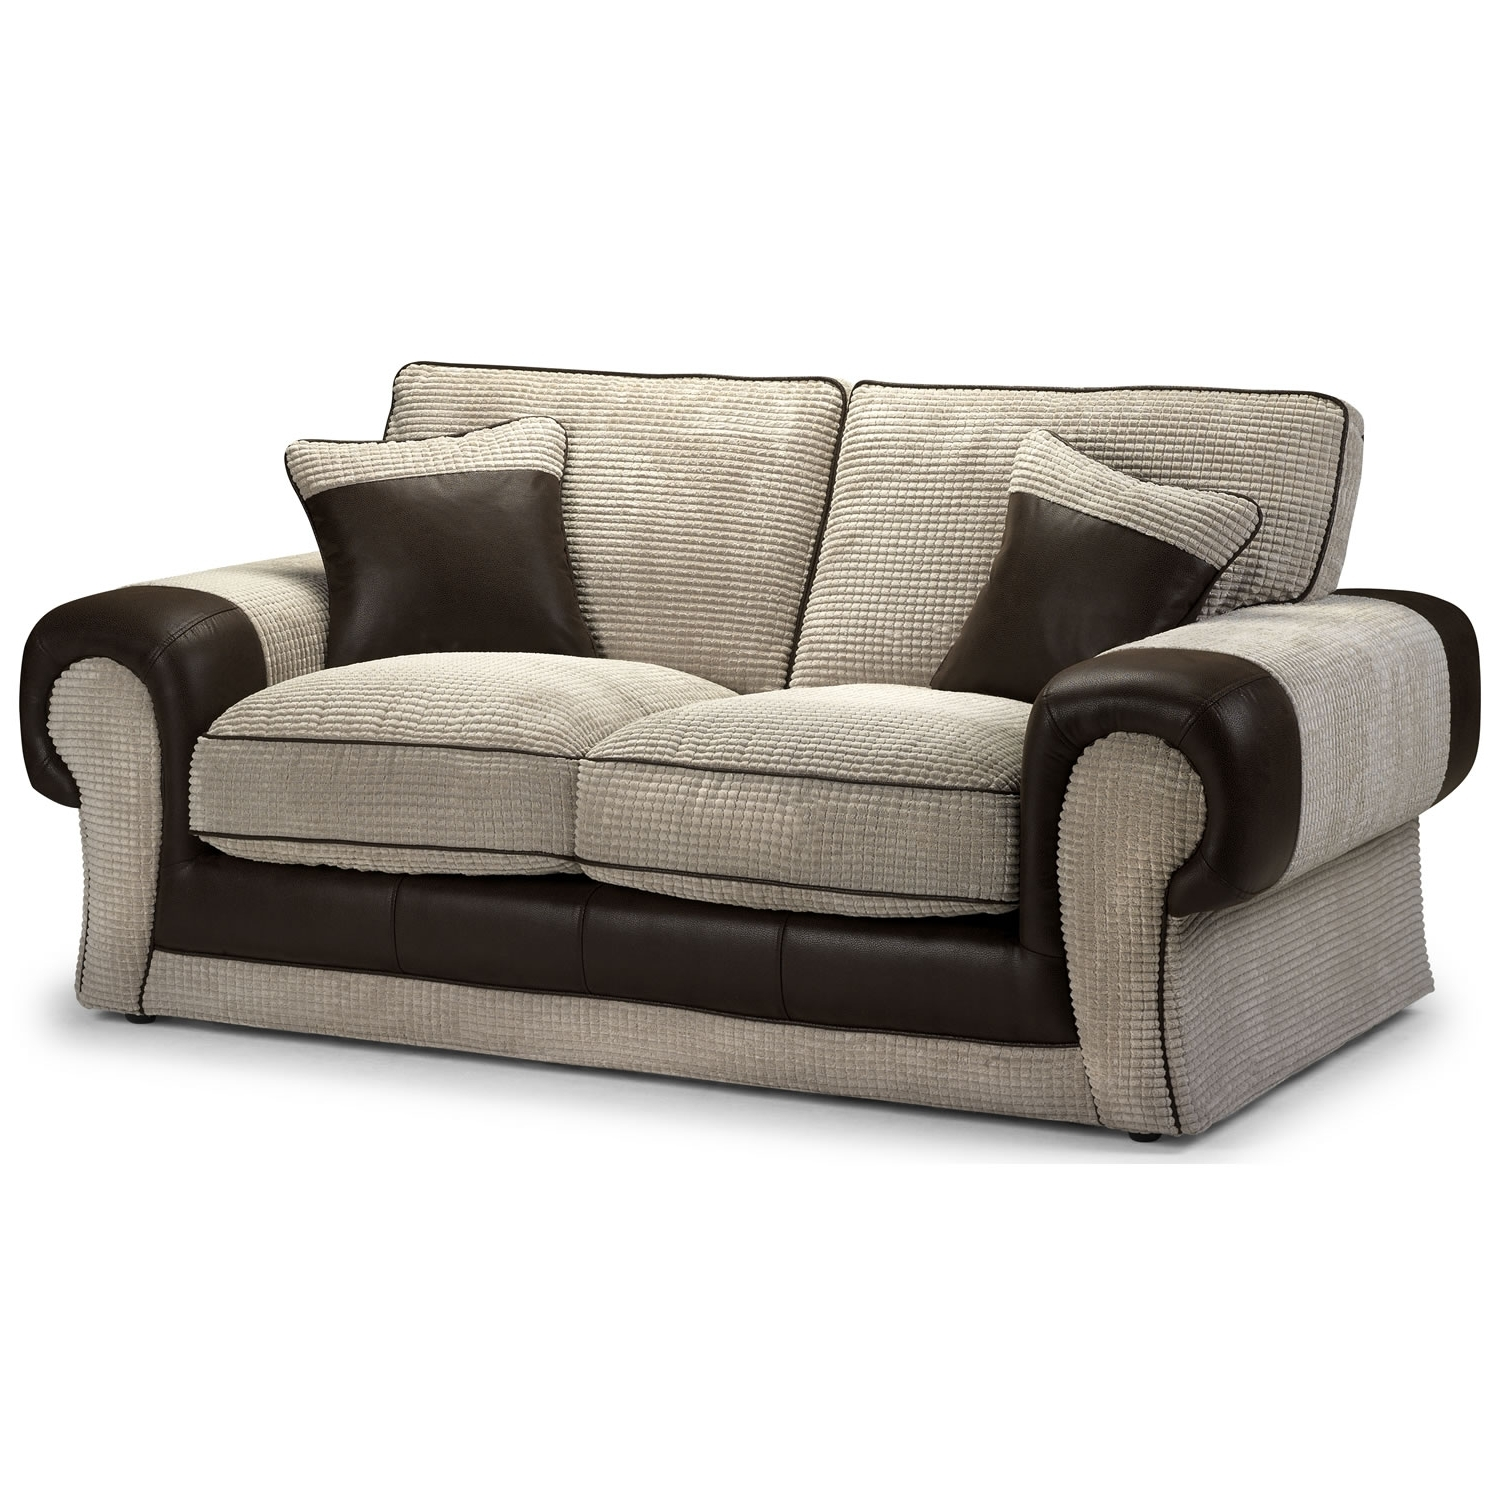 Favorite Two Seater Sofas Intended For Tangent 2 Seater Sofa – Next Day Delivery Tangent 2 Seater Sofa (View 17 of 20)